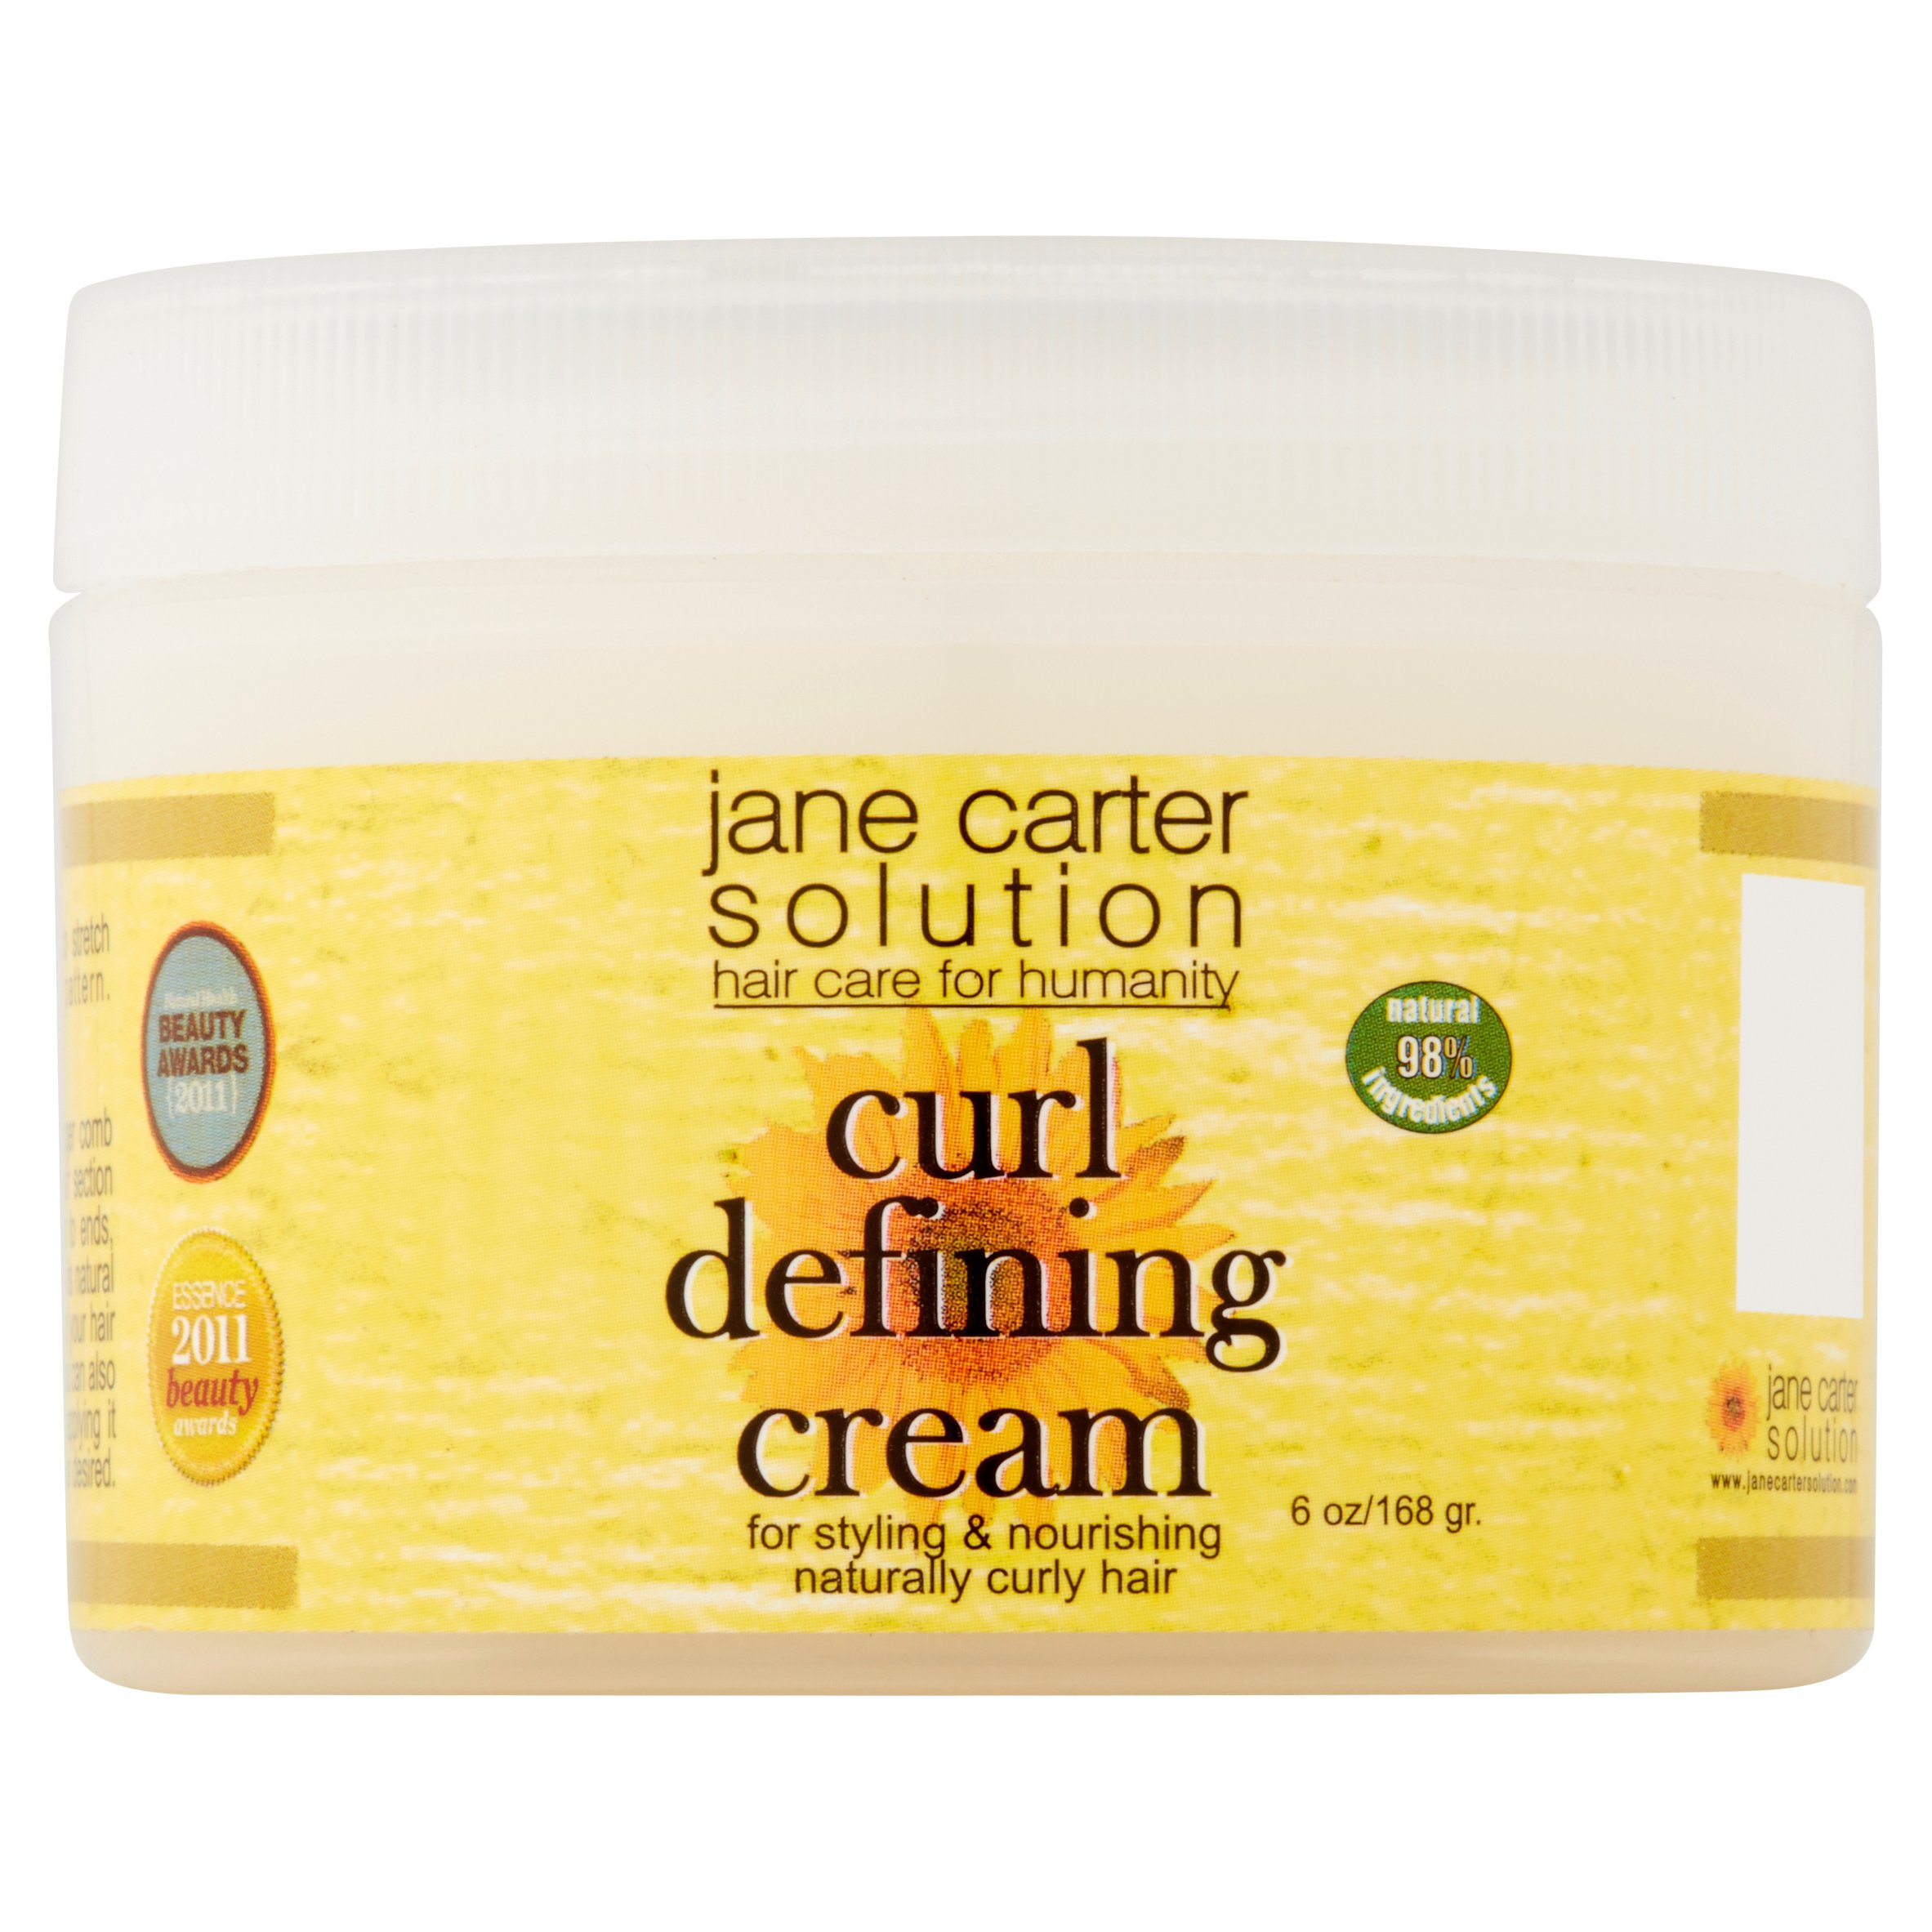 Jane Carter Solution Curl Defining Cream, 6 oz